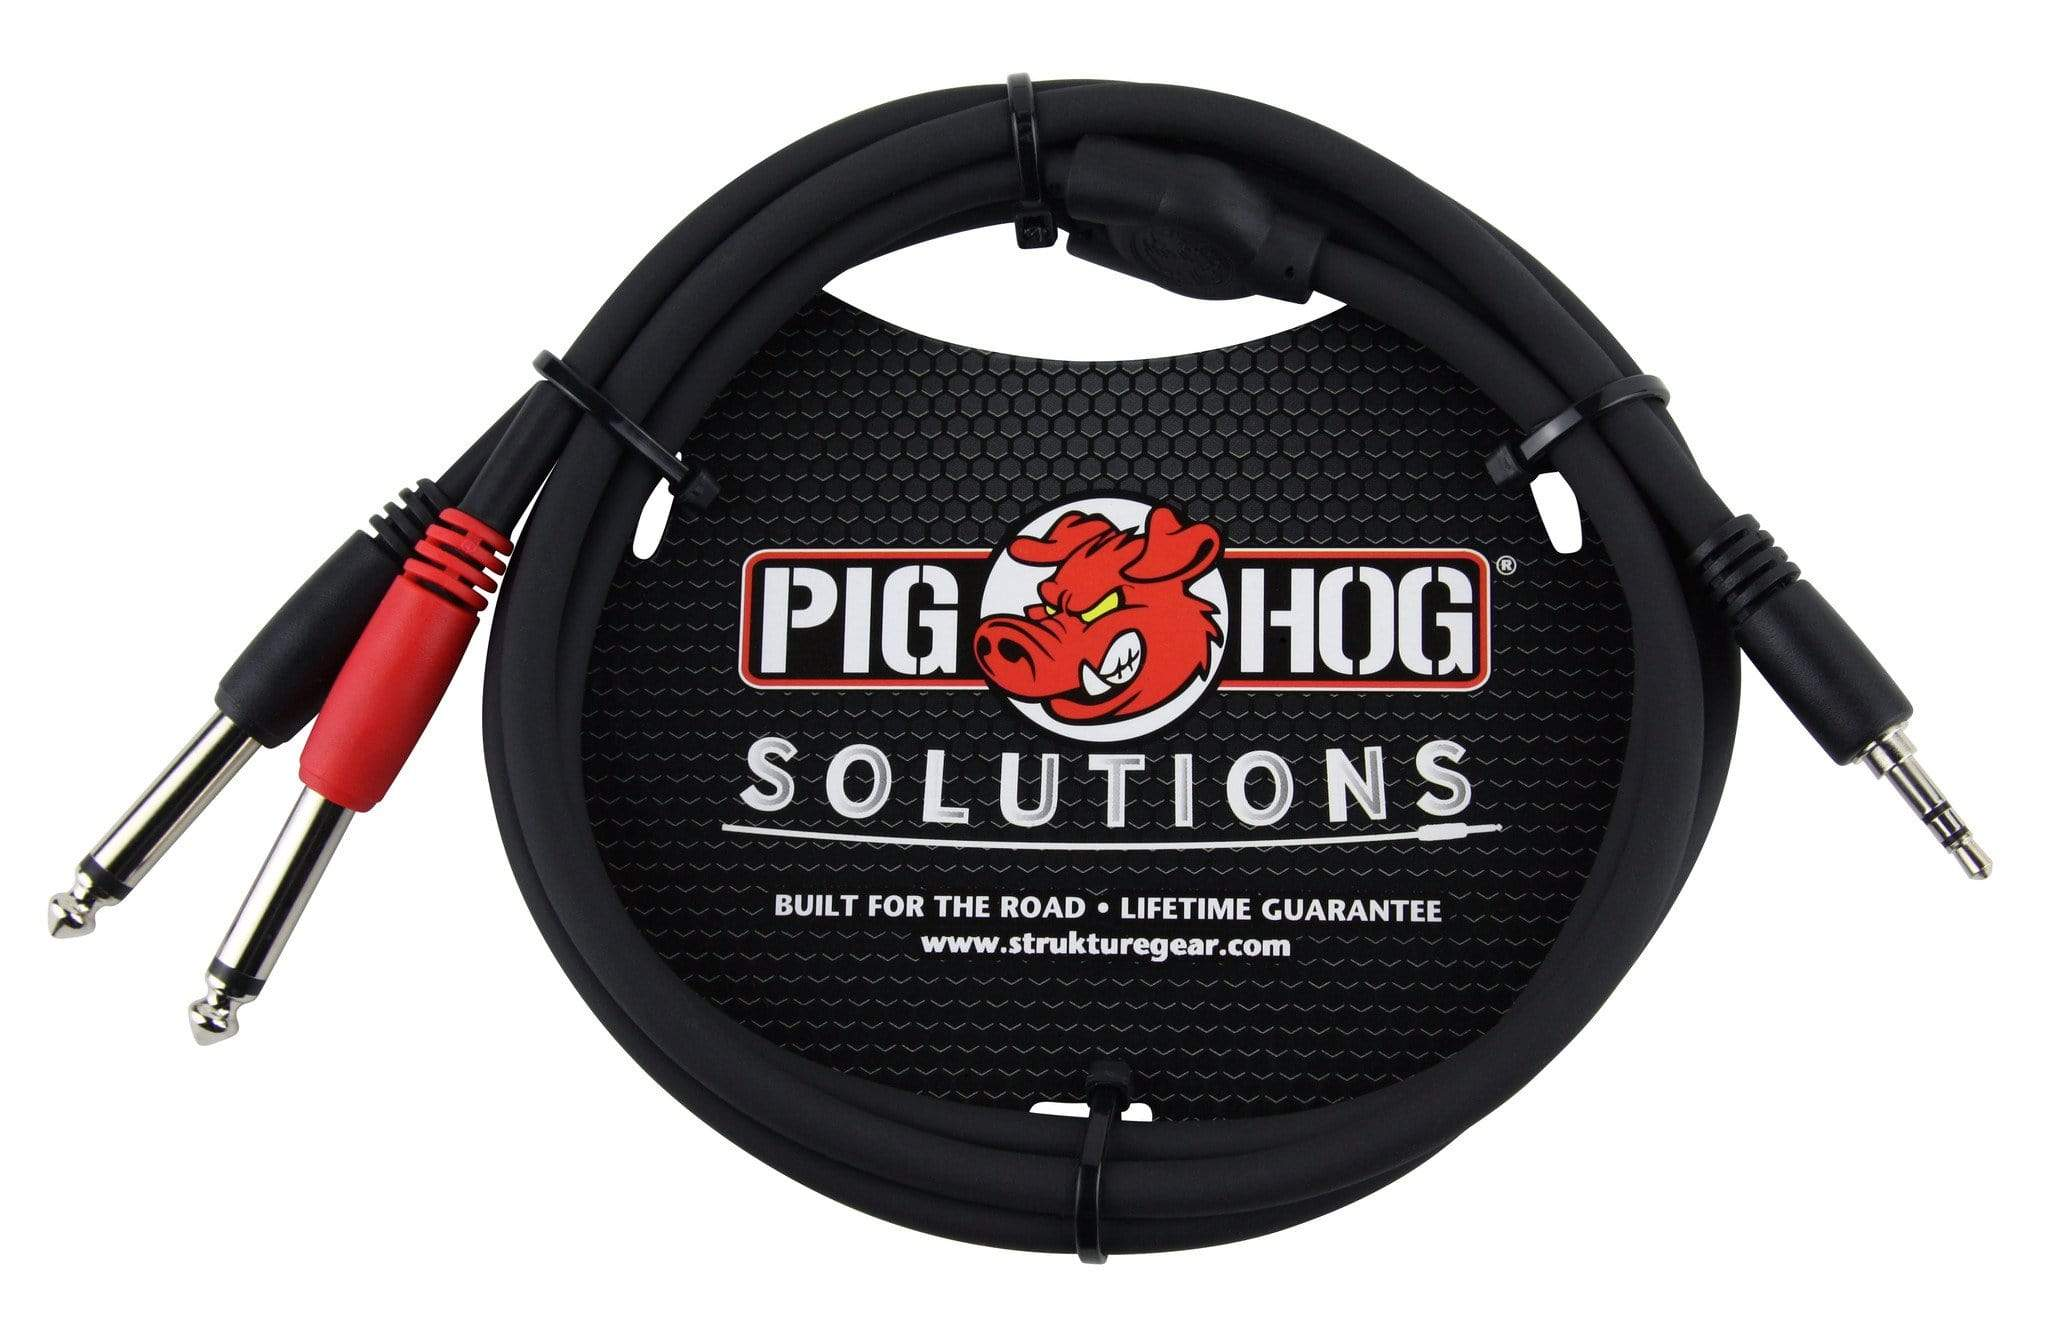 "PIG HOG TRS INSERT CABLES Pig Hog 3ft 3.5mm Male to Dual 1/4"" Male Stereo Breakout Cable TRS Mini 1/8"""